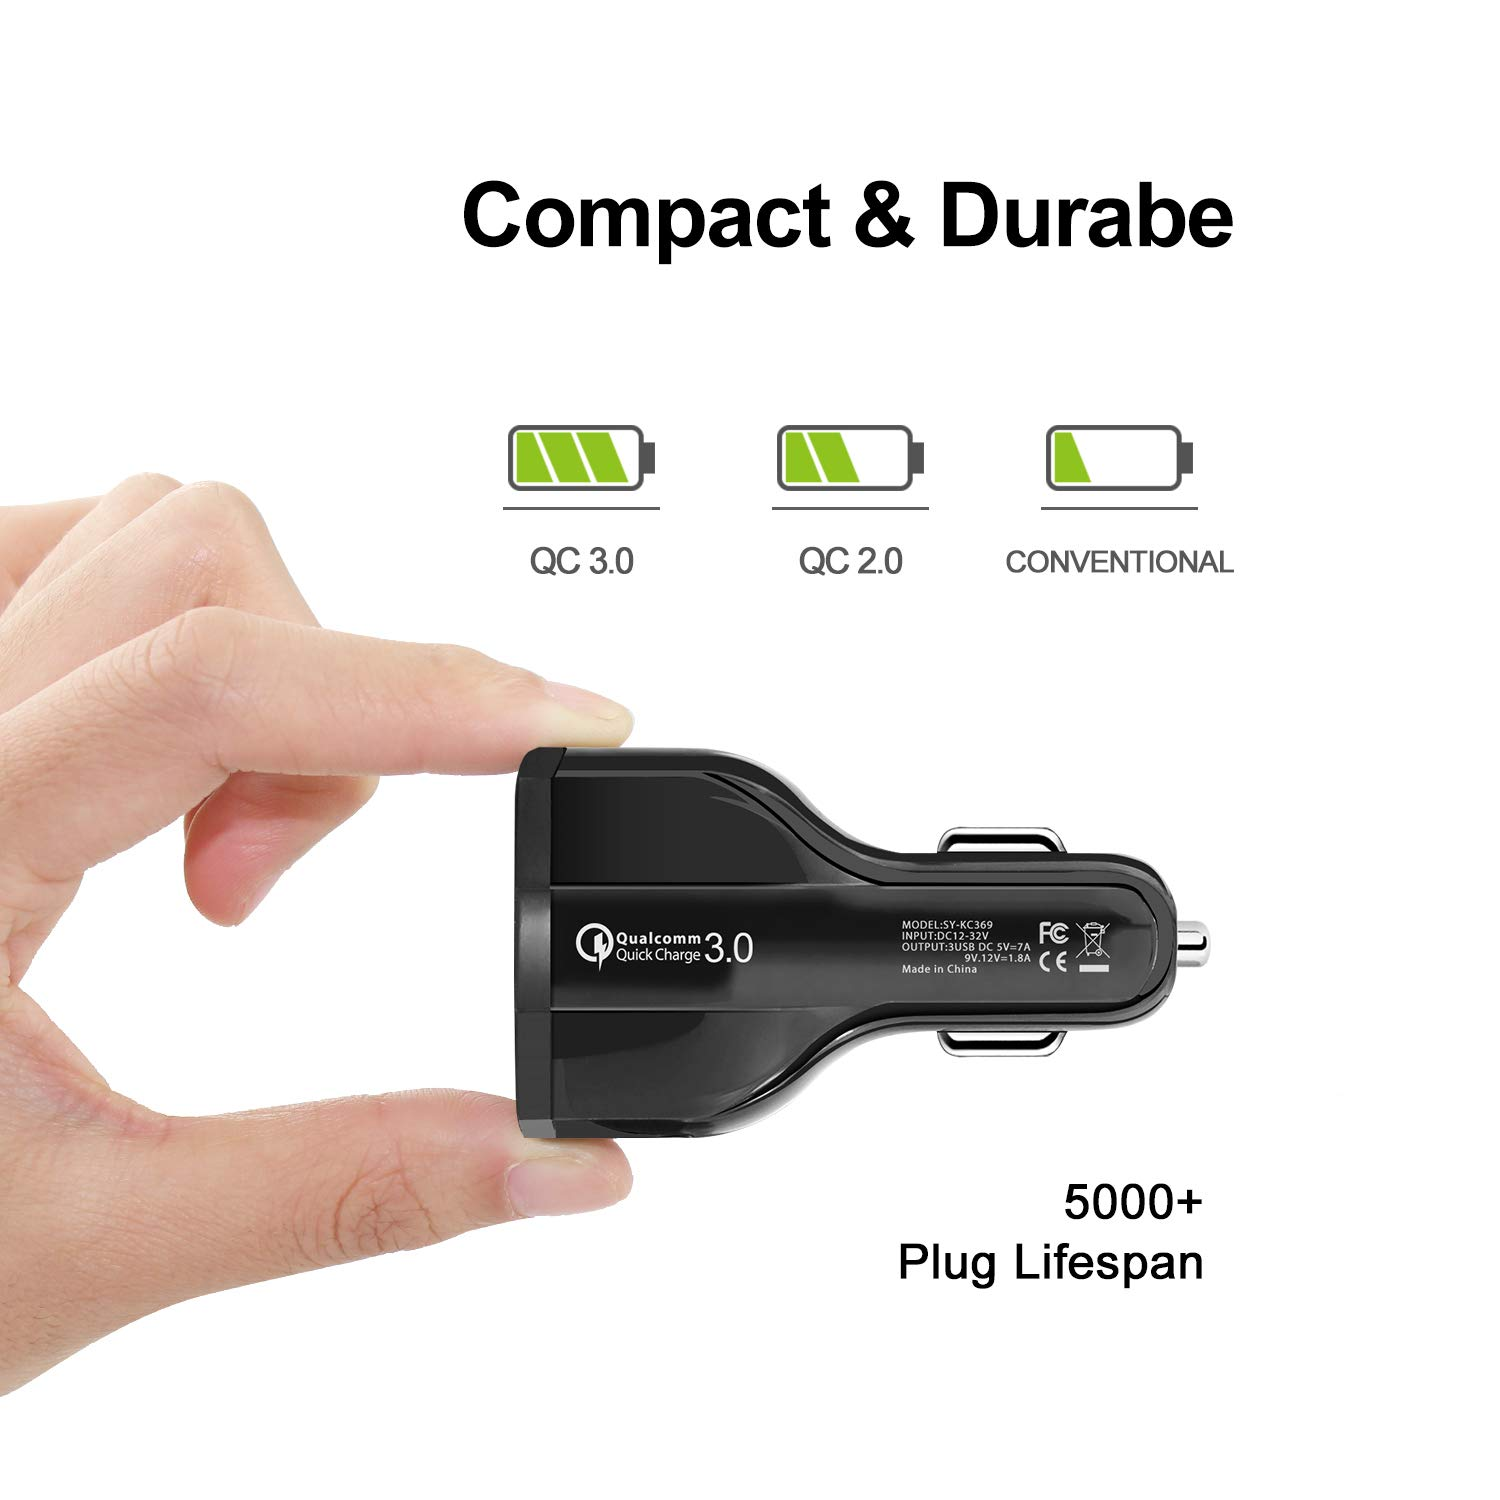 7 Amp//32 W Black+White 2 pcs Baoby 3-Port USB Car Charger for Apple /& Android Devices